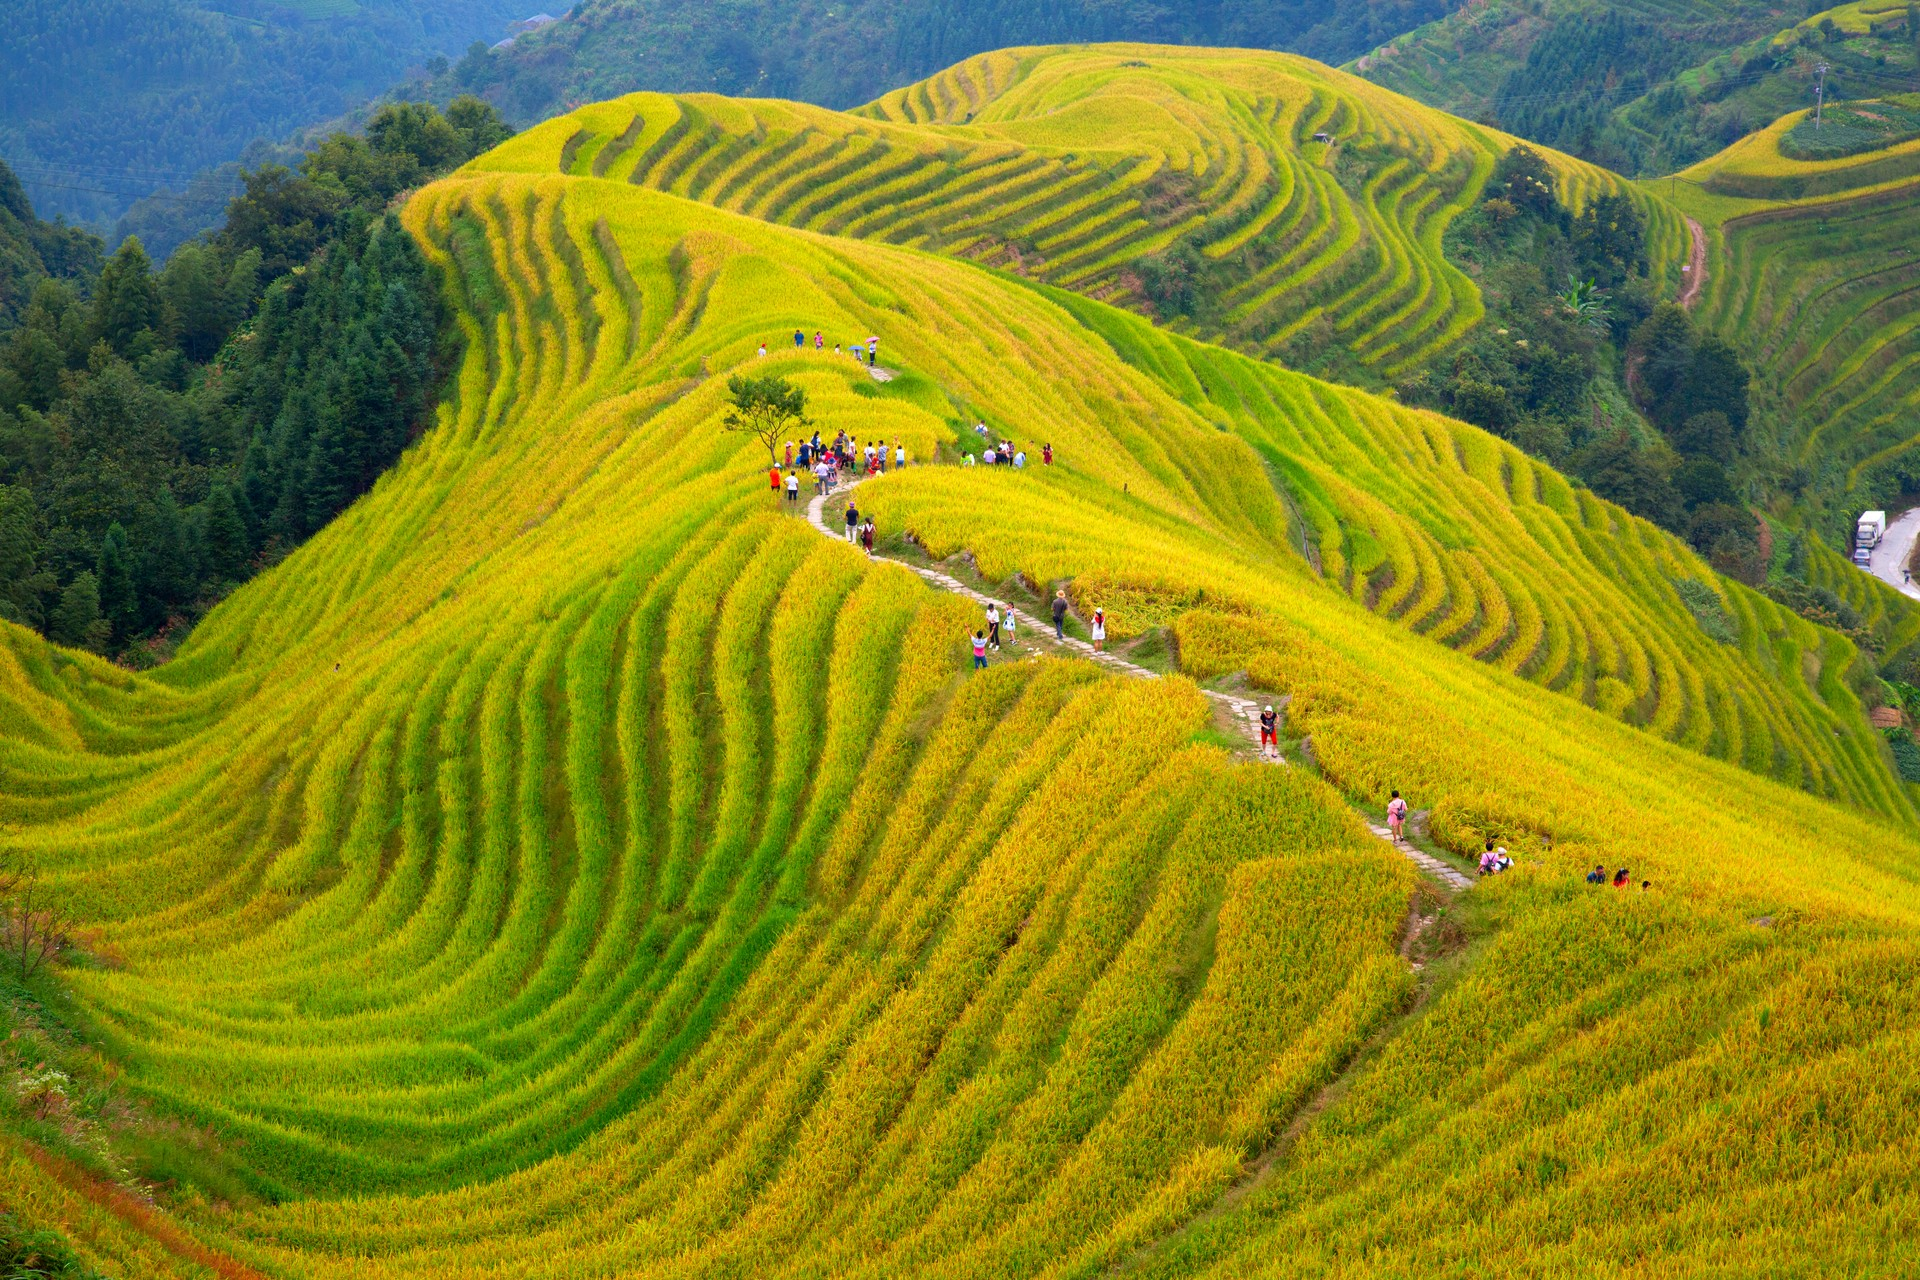 Longji Rice Terraces - 'Dragons backbone' - in China